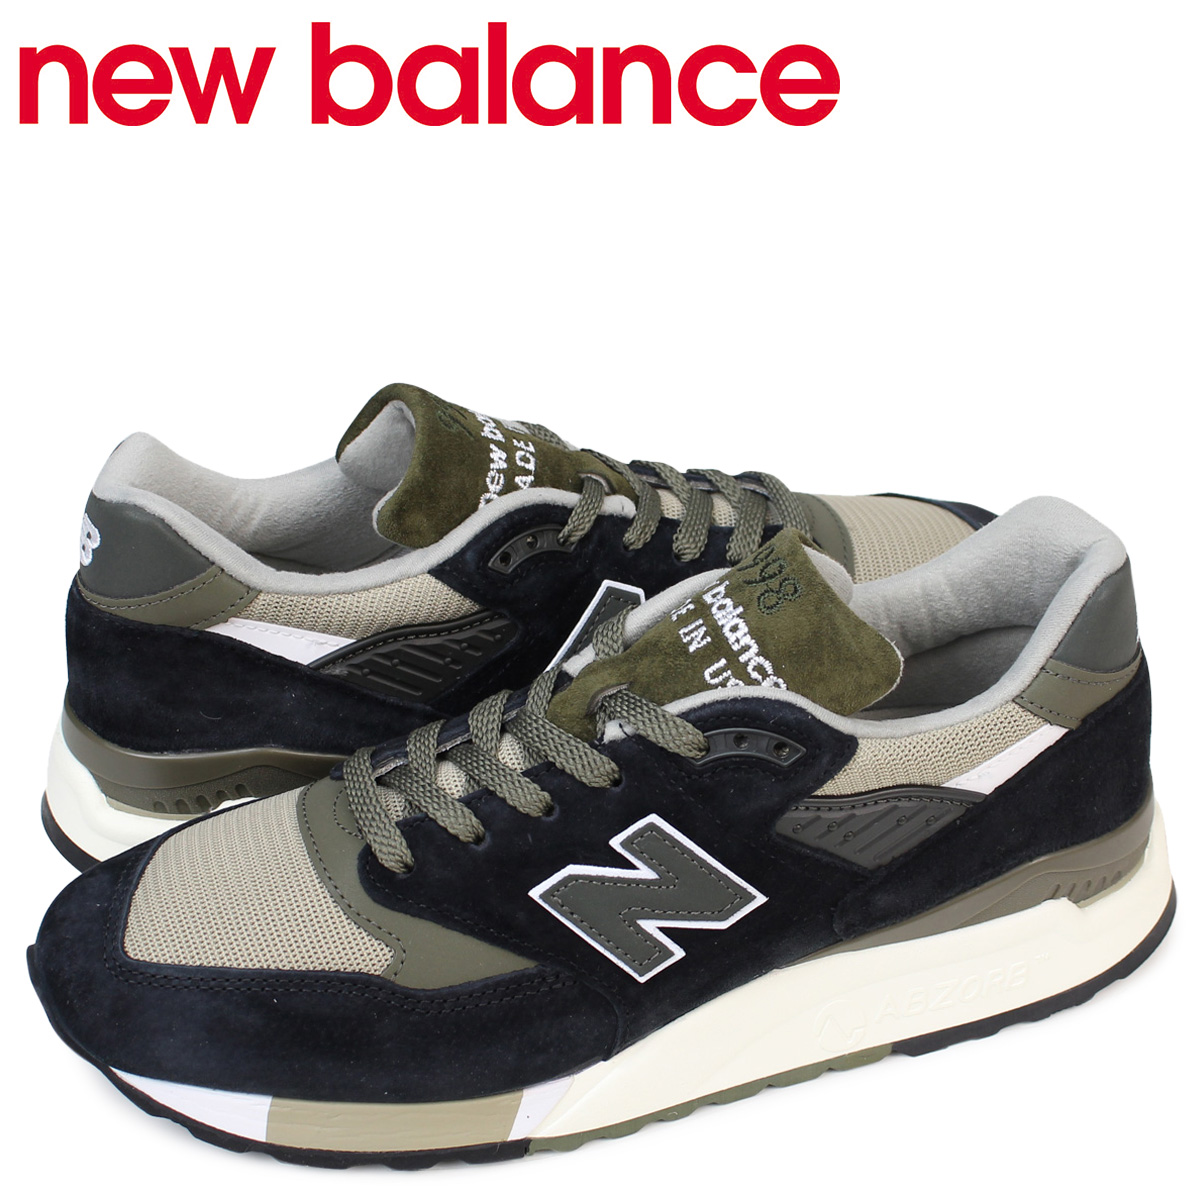 pretty nice 5ae1b c0954 new balance 998 men's New Balance sneakers M998CTR D Wise shoes black